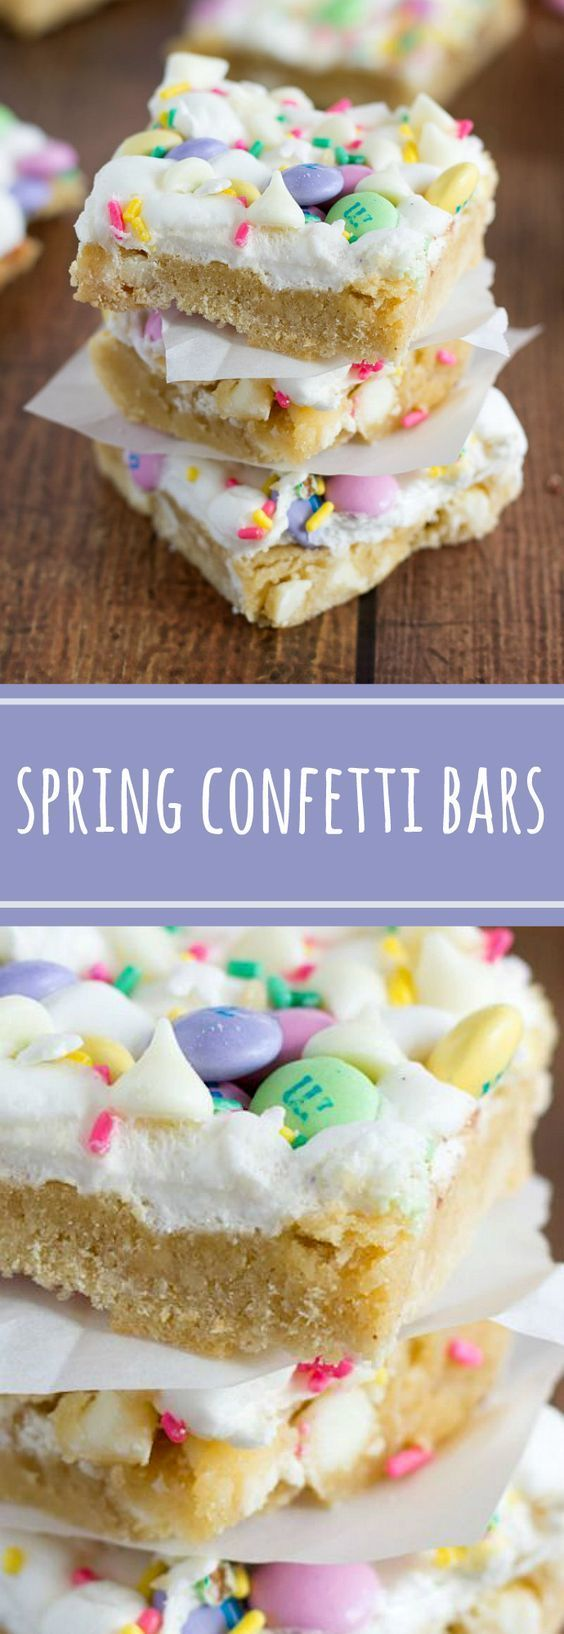 Delicious and easy spring confetti bars. Perfect for an Easter dessert!: